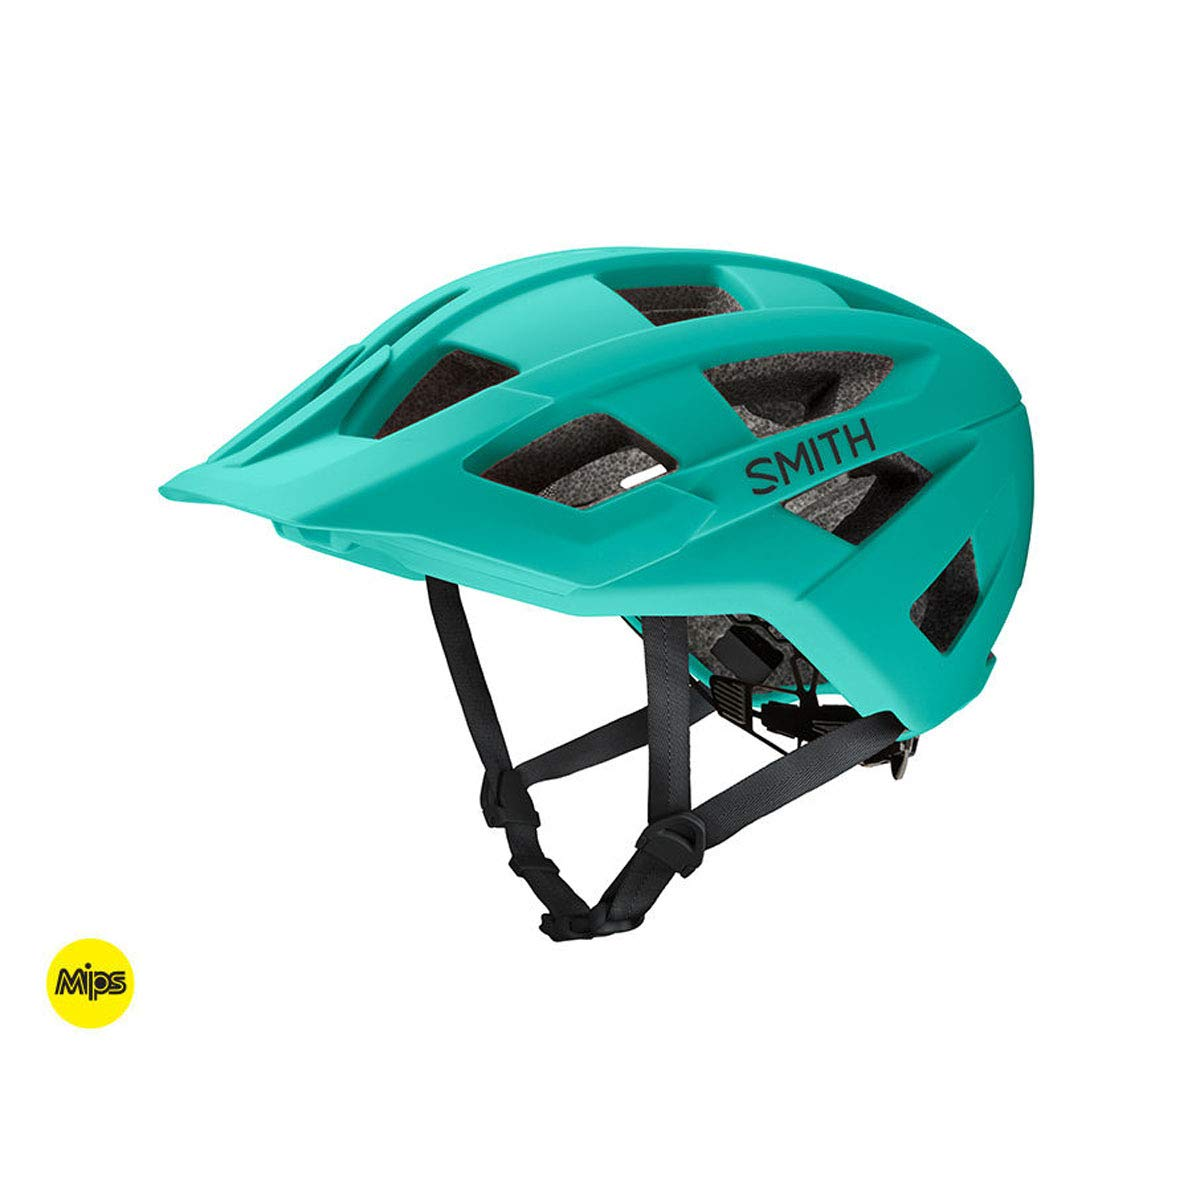 Smith Optics 2019 Venture MIPS Adult MTB Cycling Helmet - Matte Jade/Small by Smith Optics